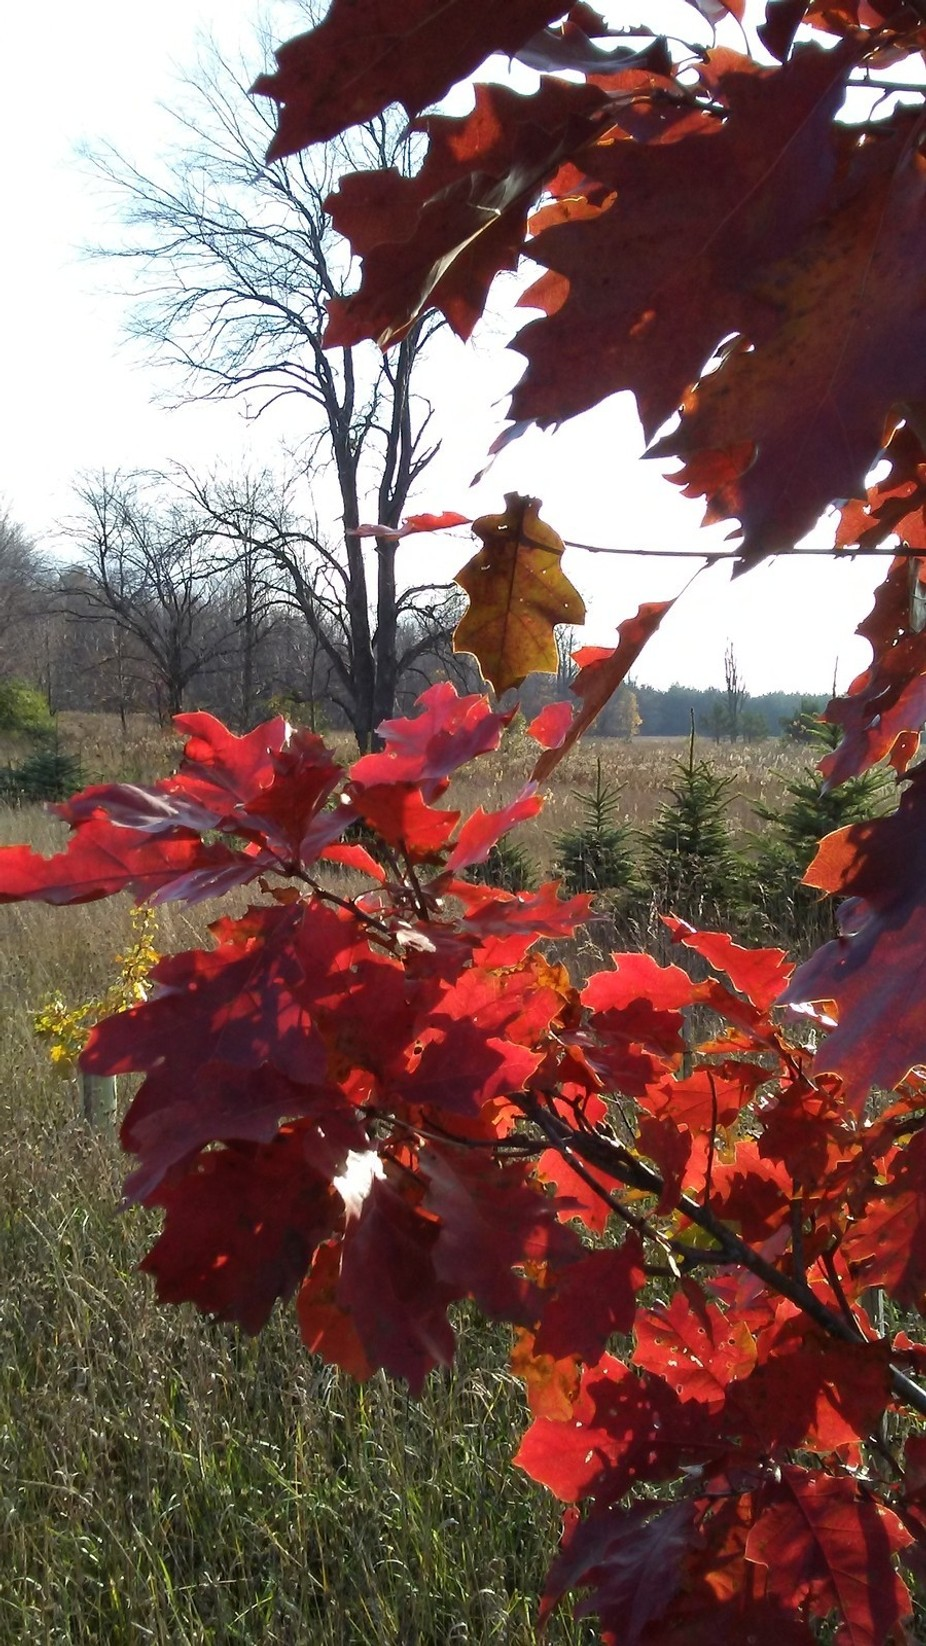 A walk out back through the remaining red oak trees on a gorgeous sunny autumn day.